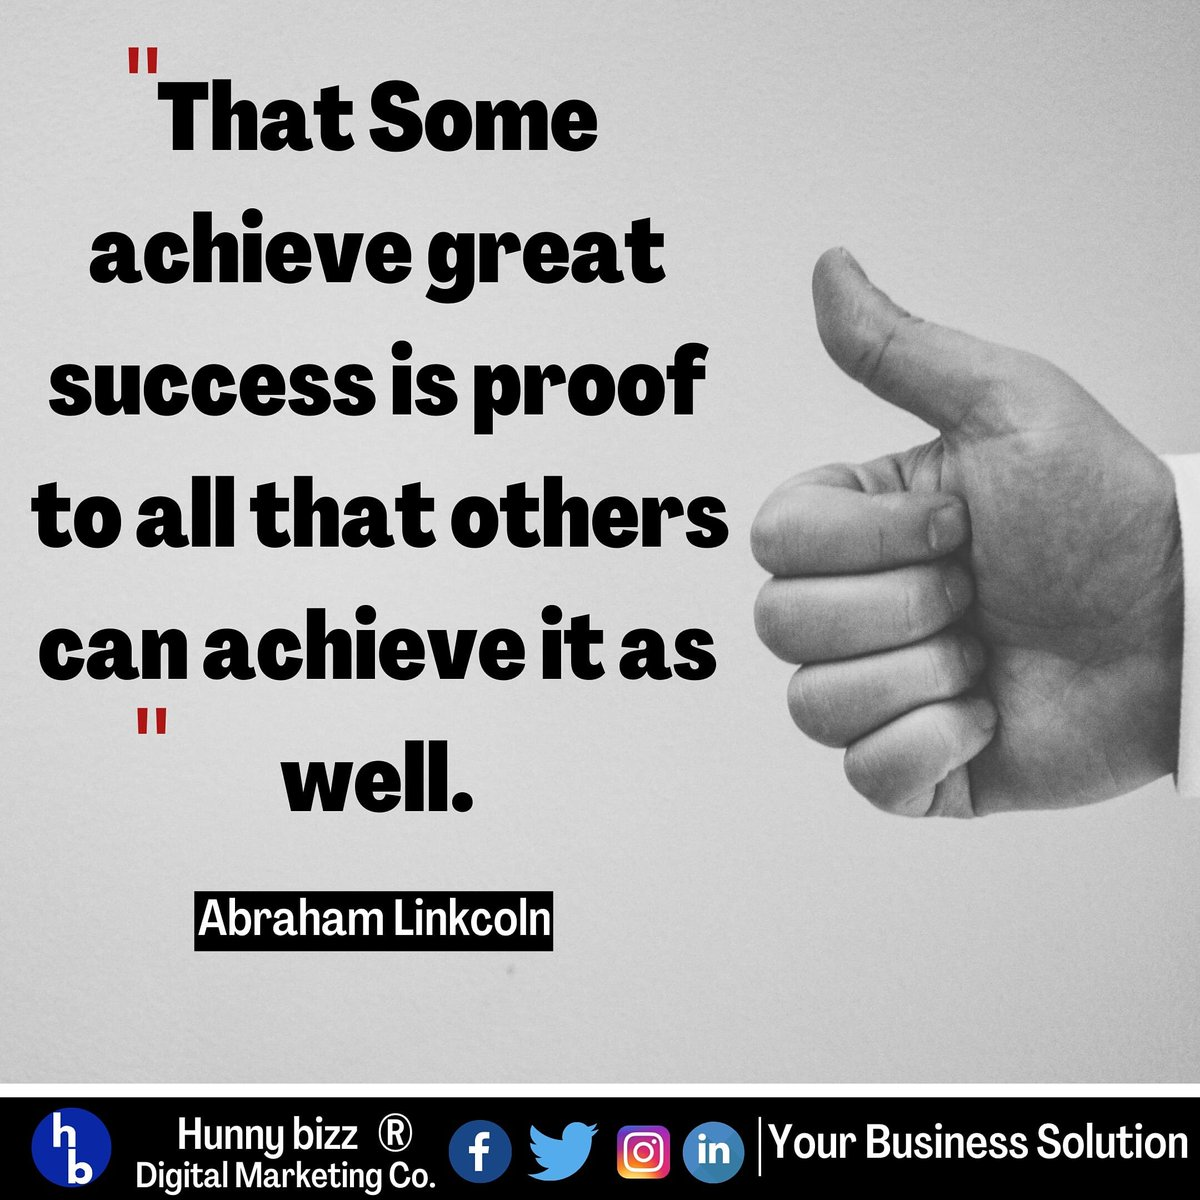 """""""That some achieve Great Success is proof to all that others can achieve it as well"""".   #sucess #lifechallenges #bigchanges #struggle #blessing #dreams #destinition #impossible #achievements #lifechanger #goals https://t.co/Rtd8R9w2q2"""